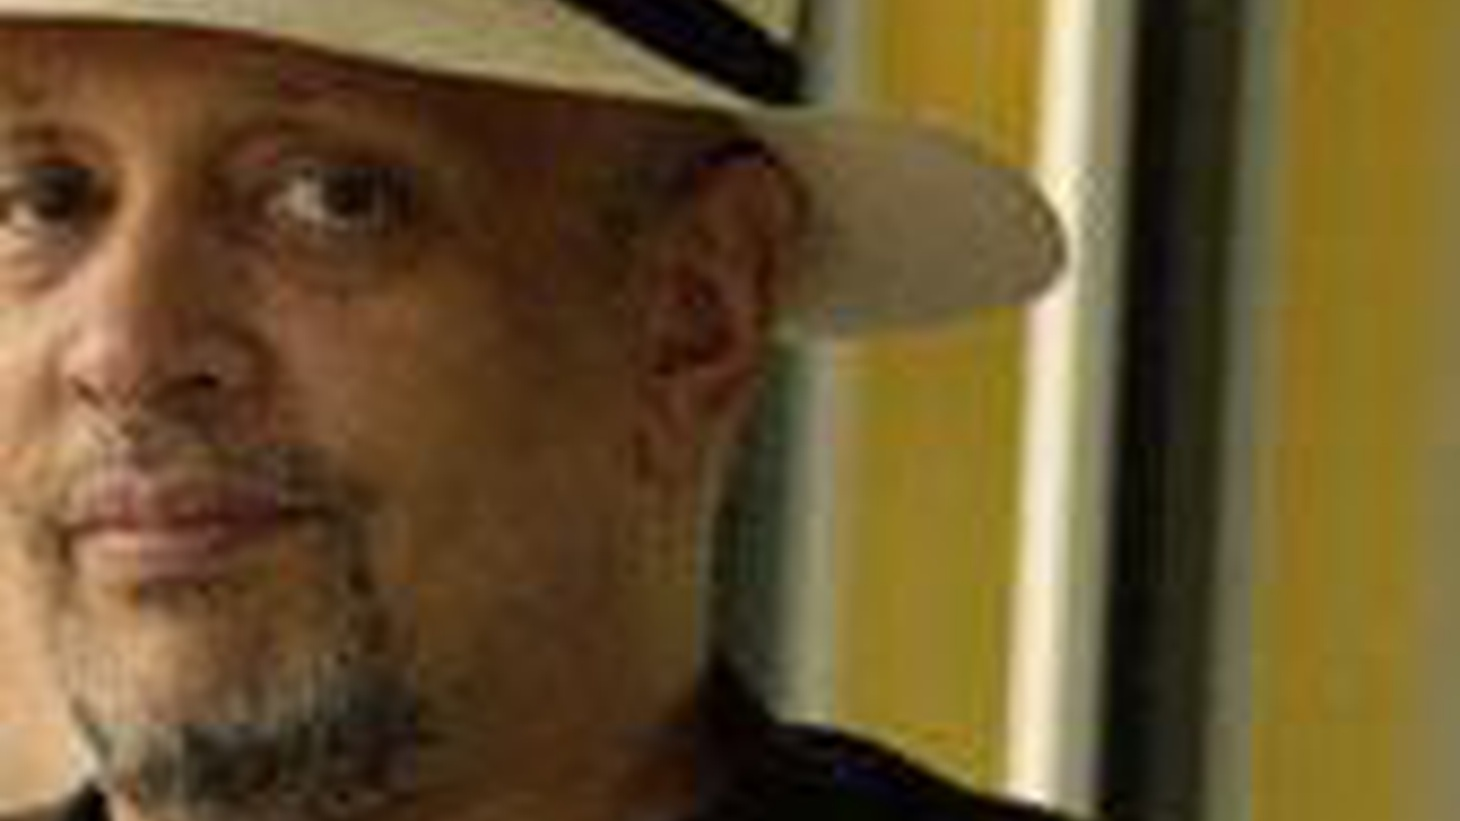 Fearless Jones  (Little Brown)    Walter Mosley is best known for his noir mysteries. With books set in the black communities of Los Angeles, he writes the hidden histories of race, sensuality, crime and cultural aspiration....